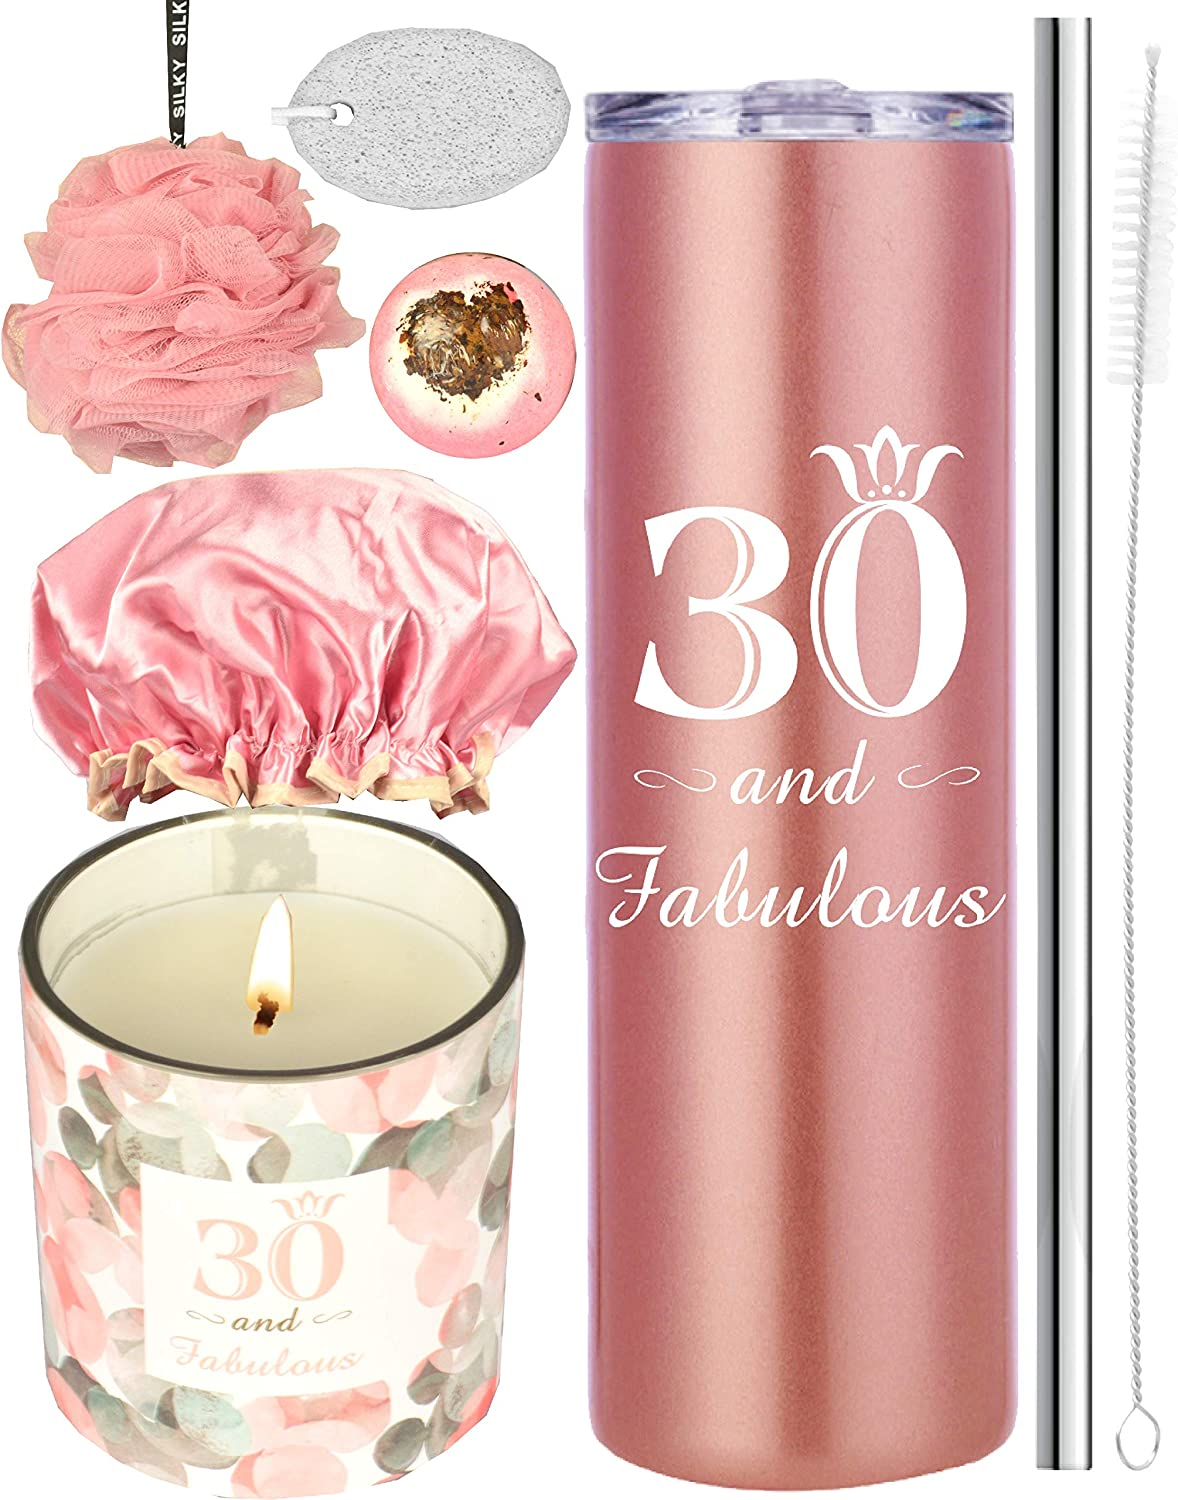 30th Birthday Gifts for Women, 30 Birthday Gifts, Gifts for 30th Birthday Women, 30th Birthday Decorations, Happy 30th Birthday Candle, 30th Birthday Tumblers, 30th Birthday Party Supplies